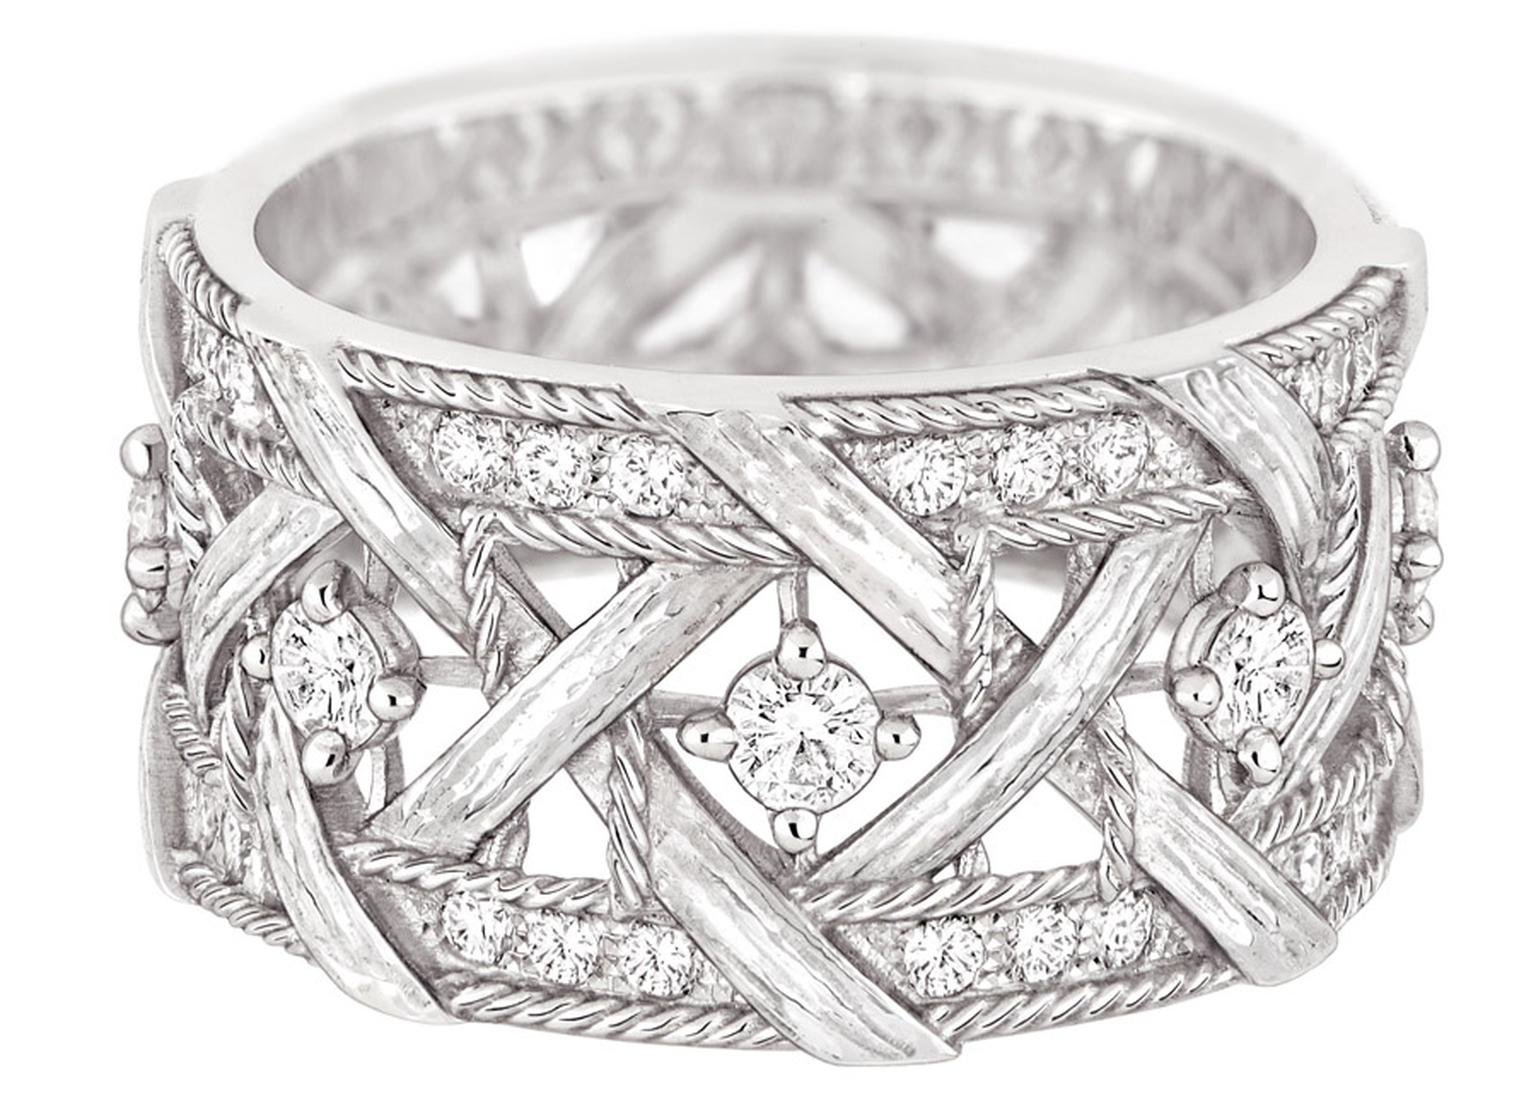 My-Dior-Ring-White-gold-and-diamonds.jpg